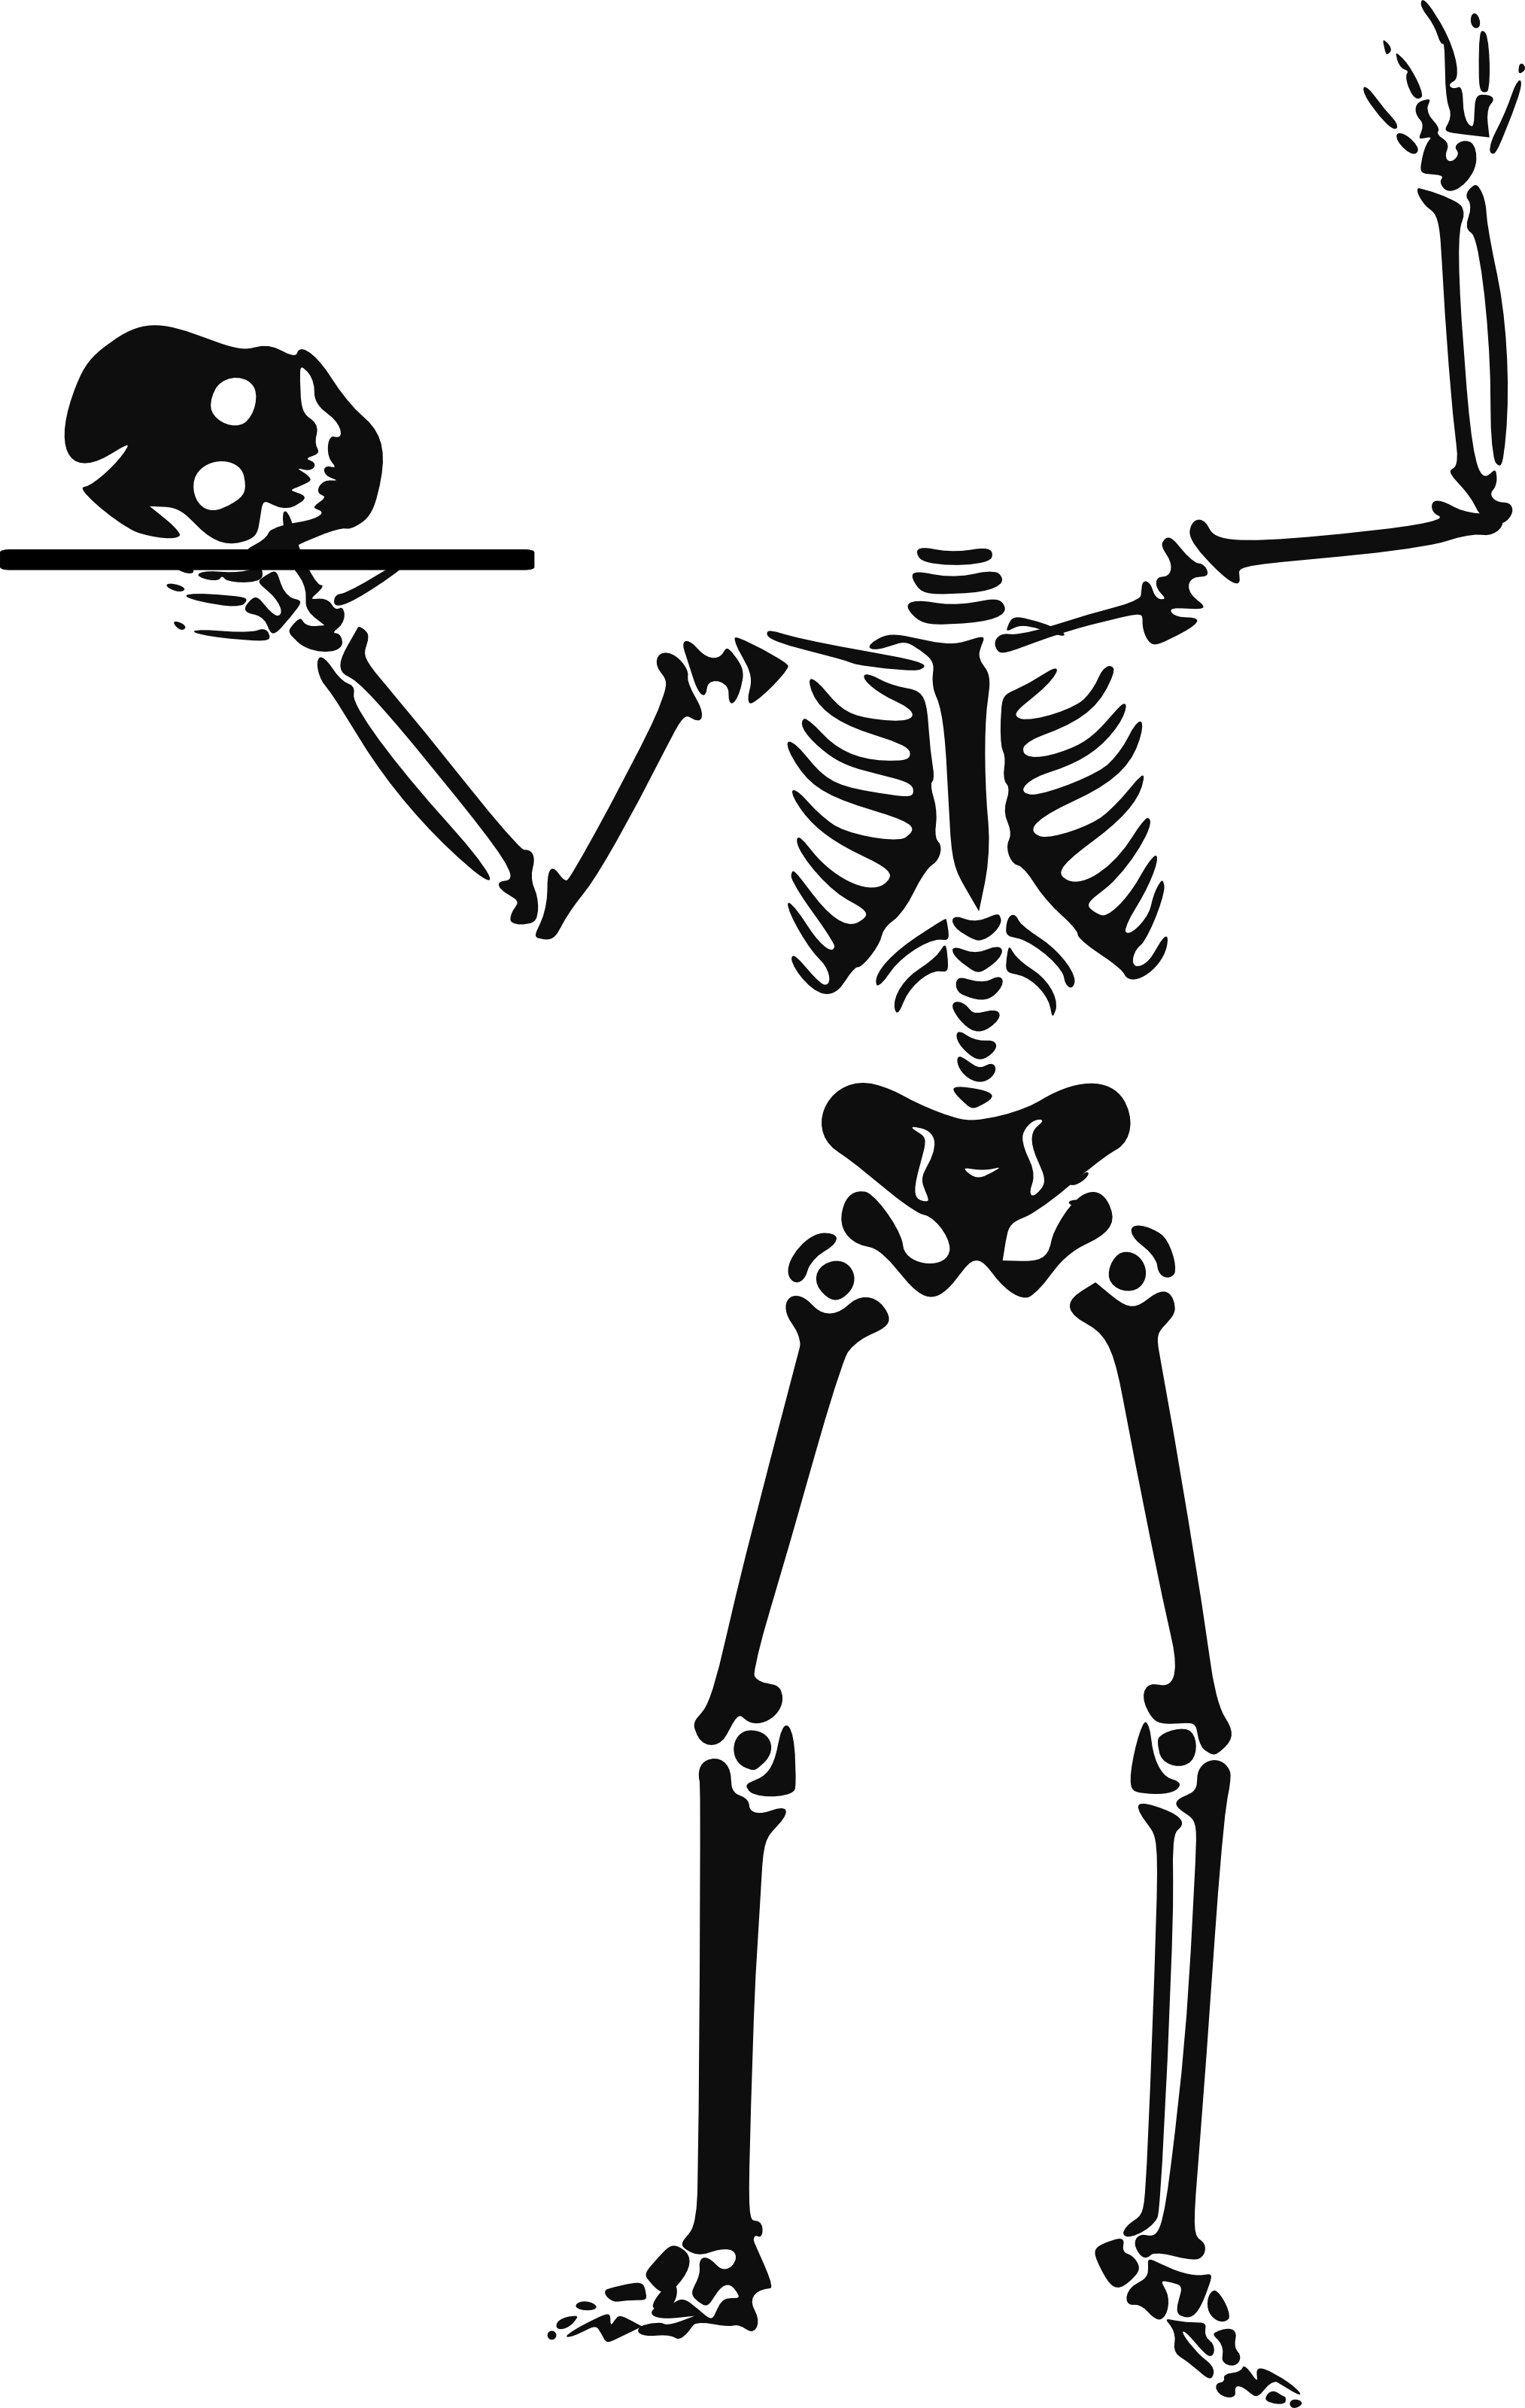 Skeleton clipart chiropractor. Free cliparts download clip